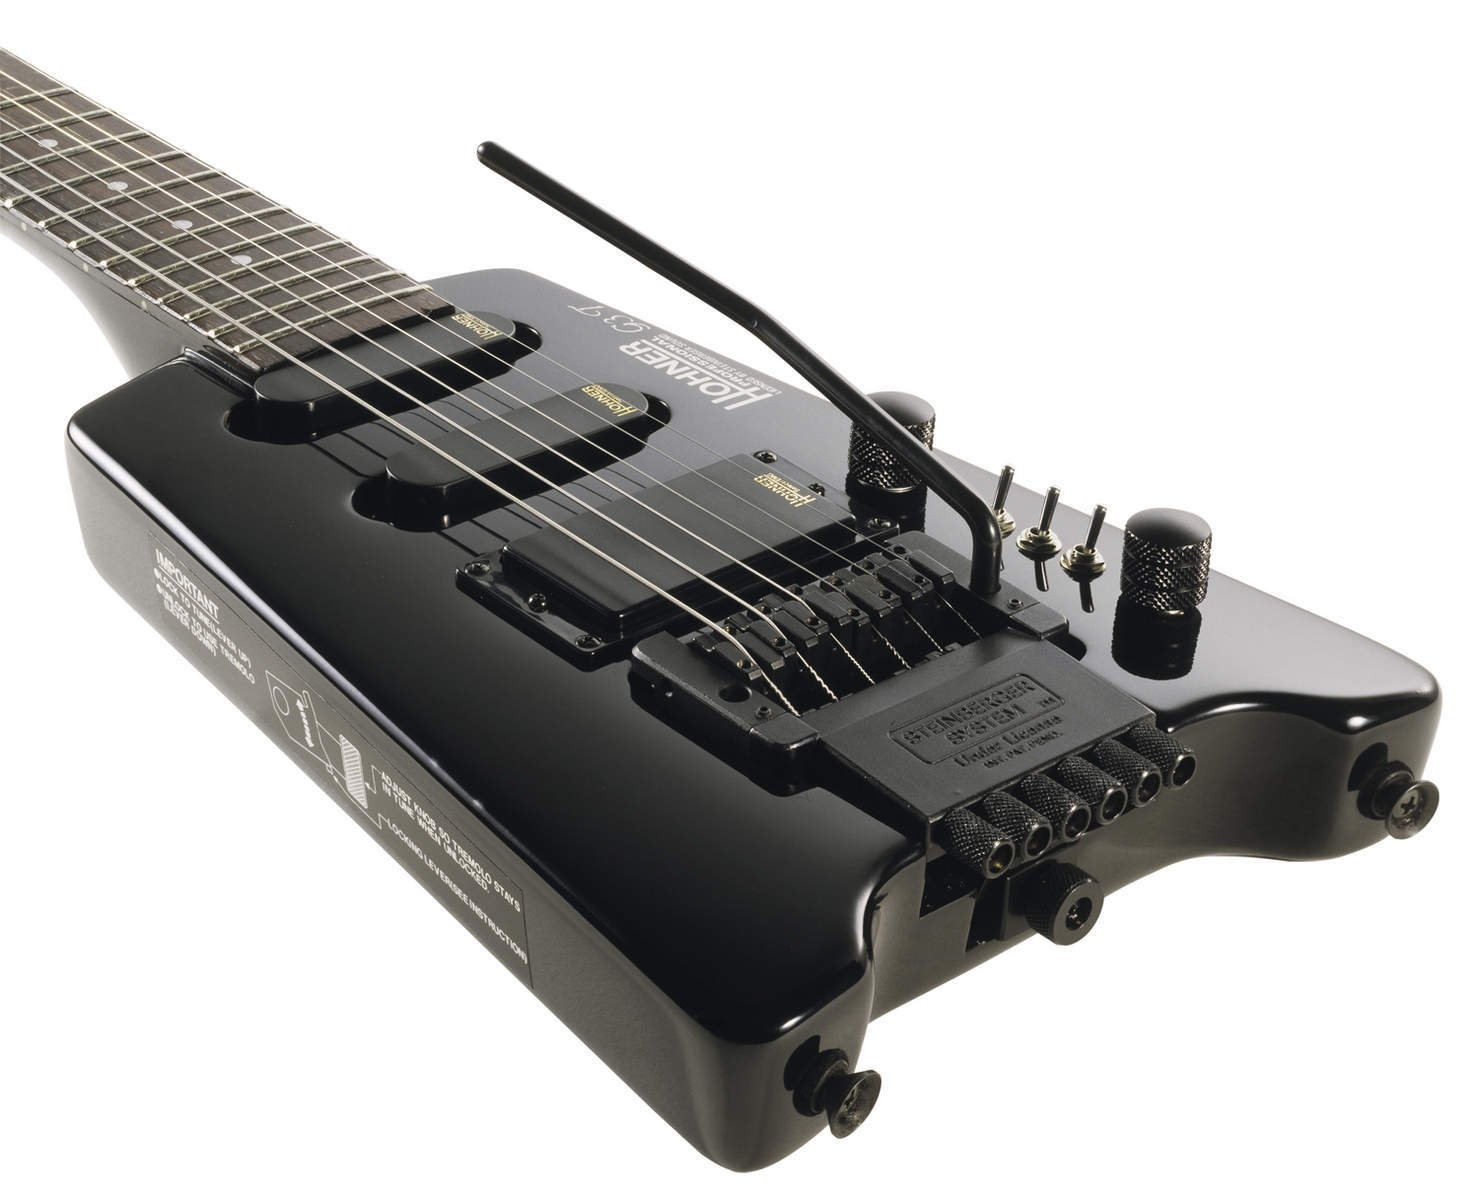 GUITARRA ELECTRICA-Hohner (G3T BK) Steinberger (Arce Macizo) Color Negro (Pick Ups Select): Amazon.es: Instrumentos musicales